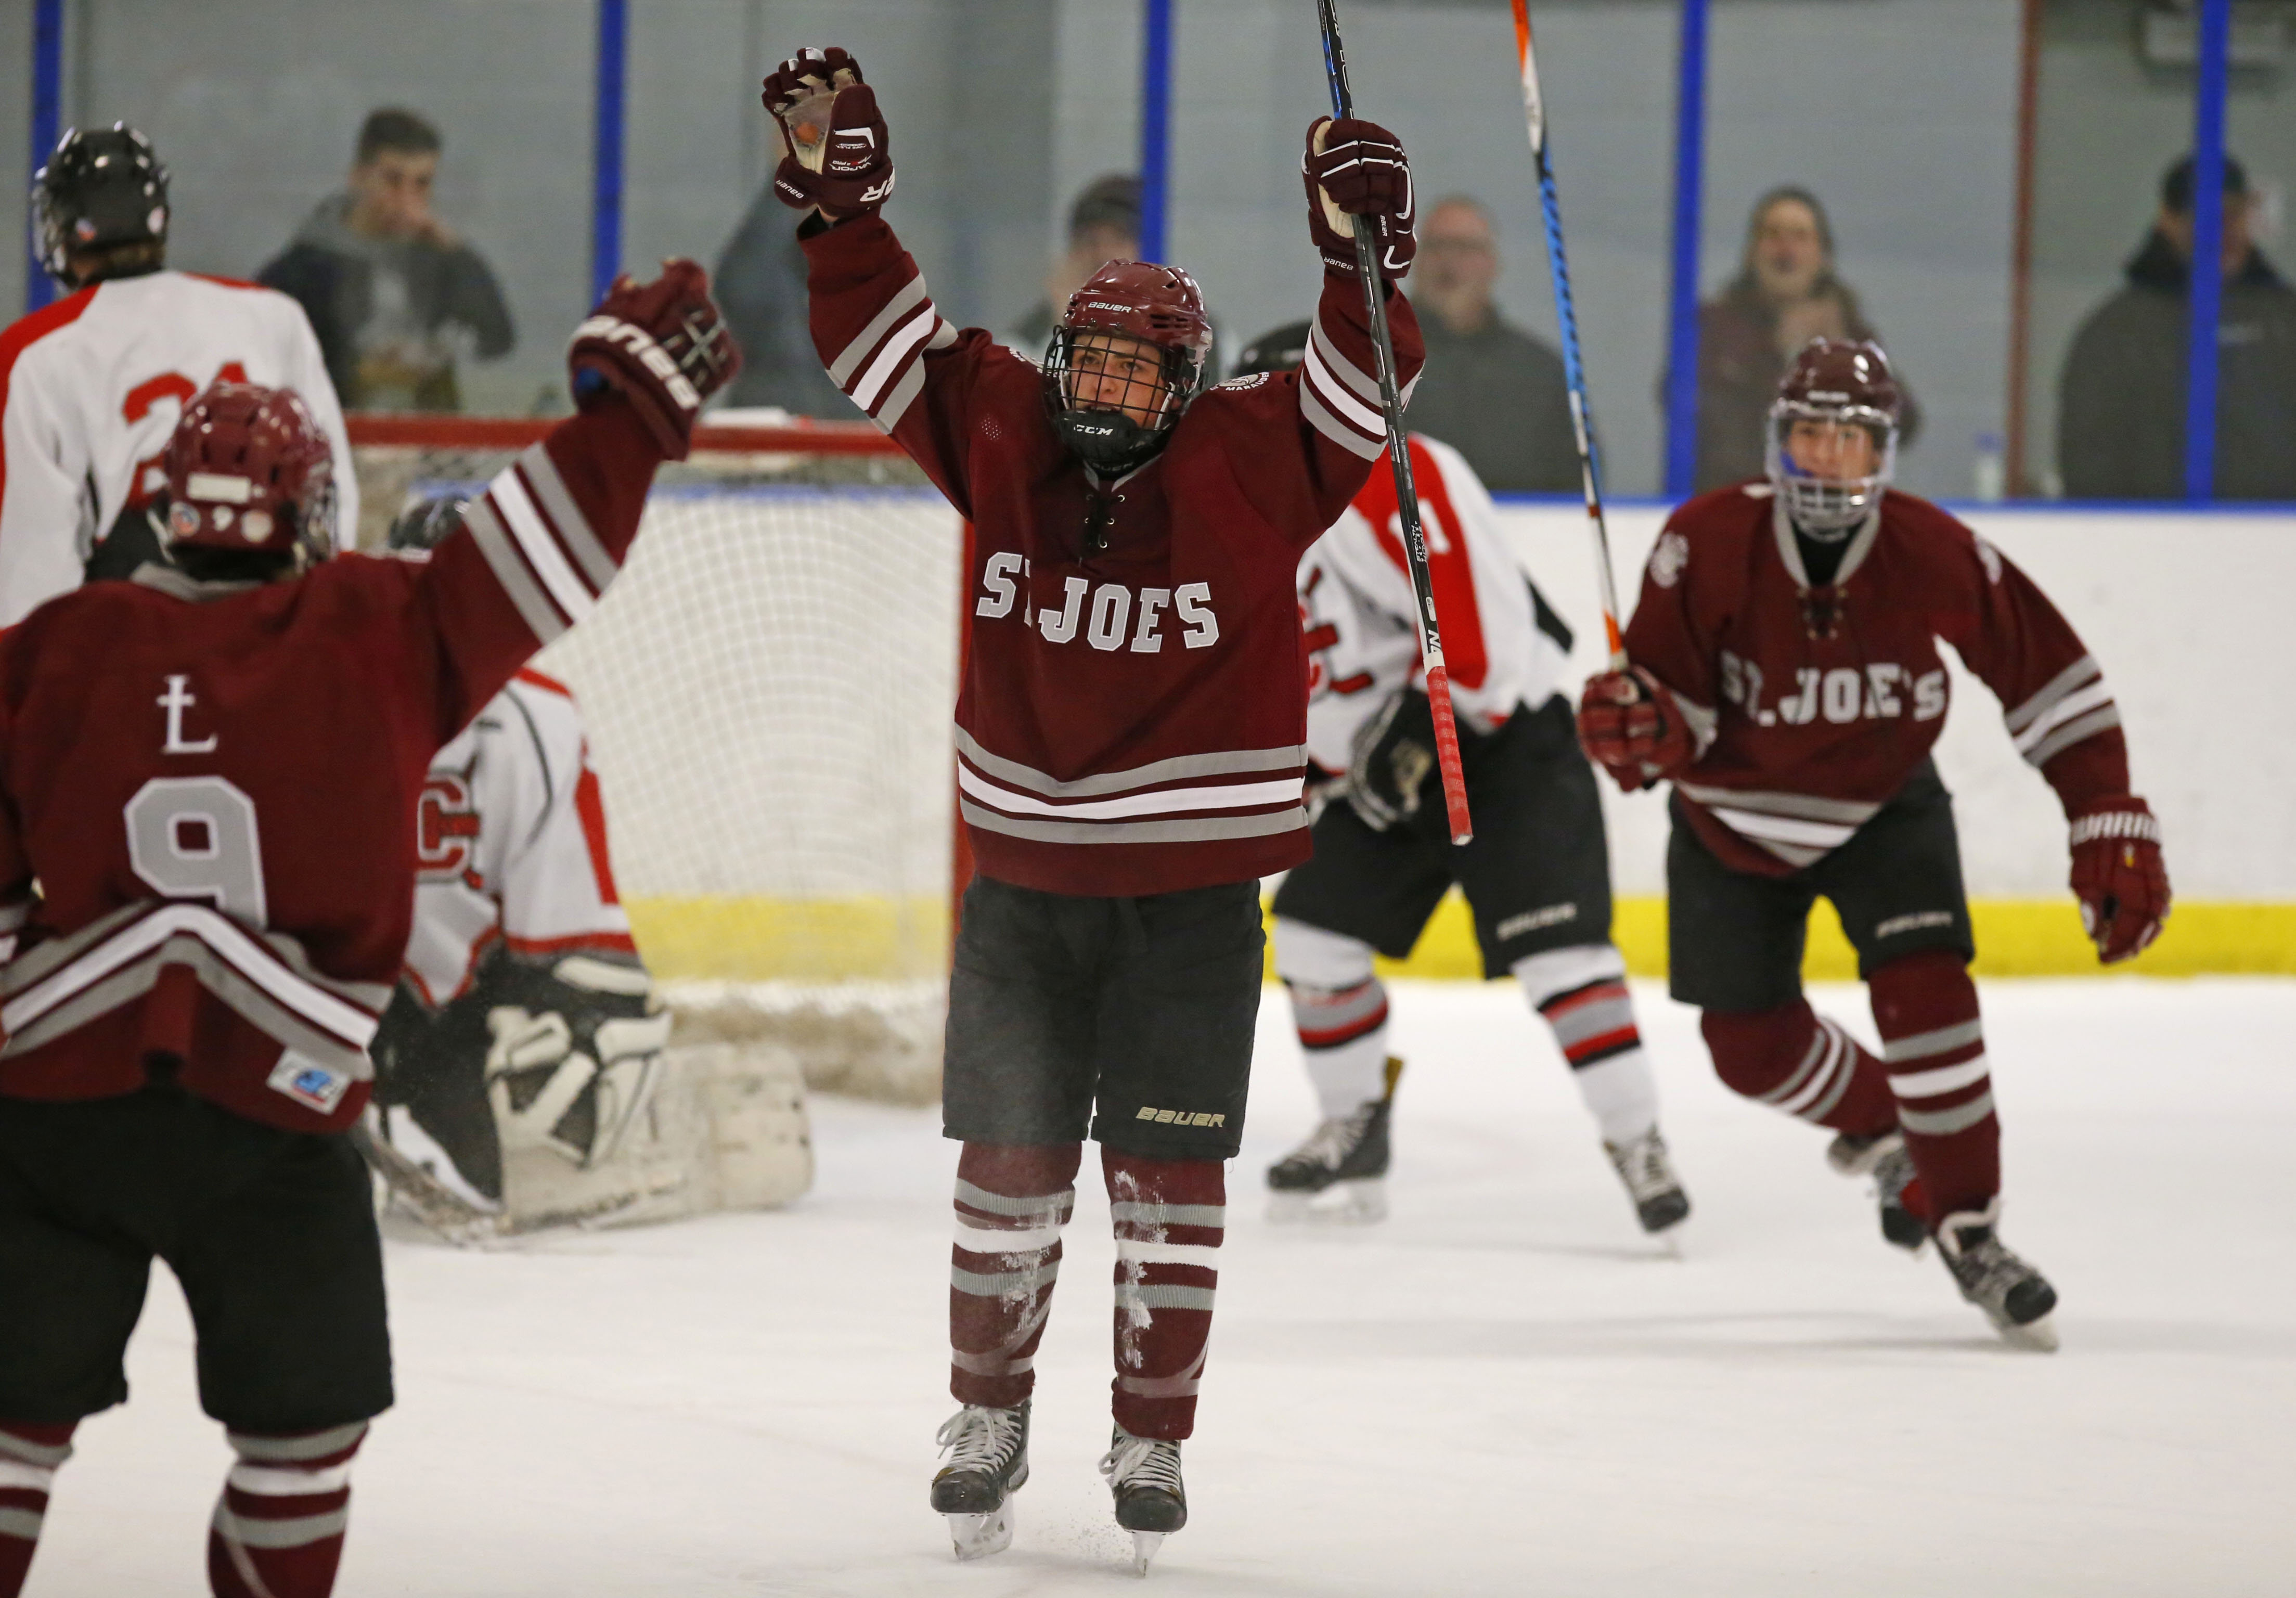 St. Joe's Mark Gilbert celebrates after scoring what turned out to be the game-winning goal in a 1-0 win over Clarence. (Harry Scull Jr./Buffalo News)